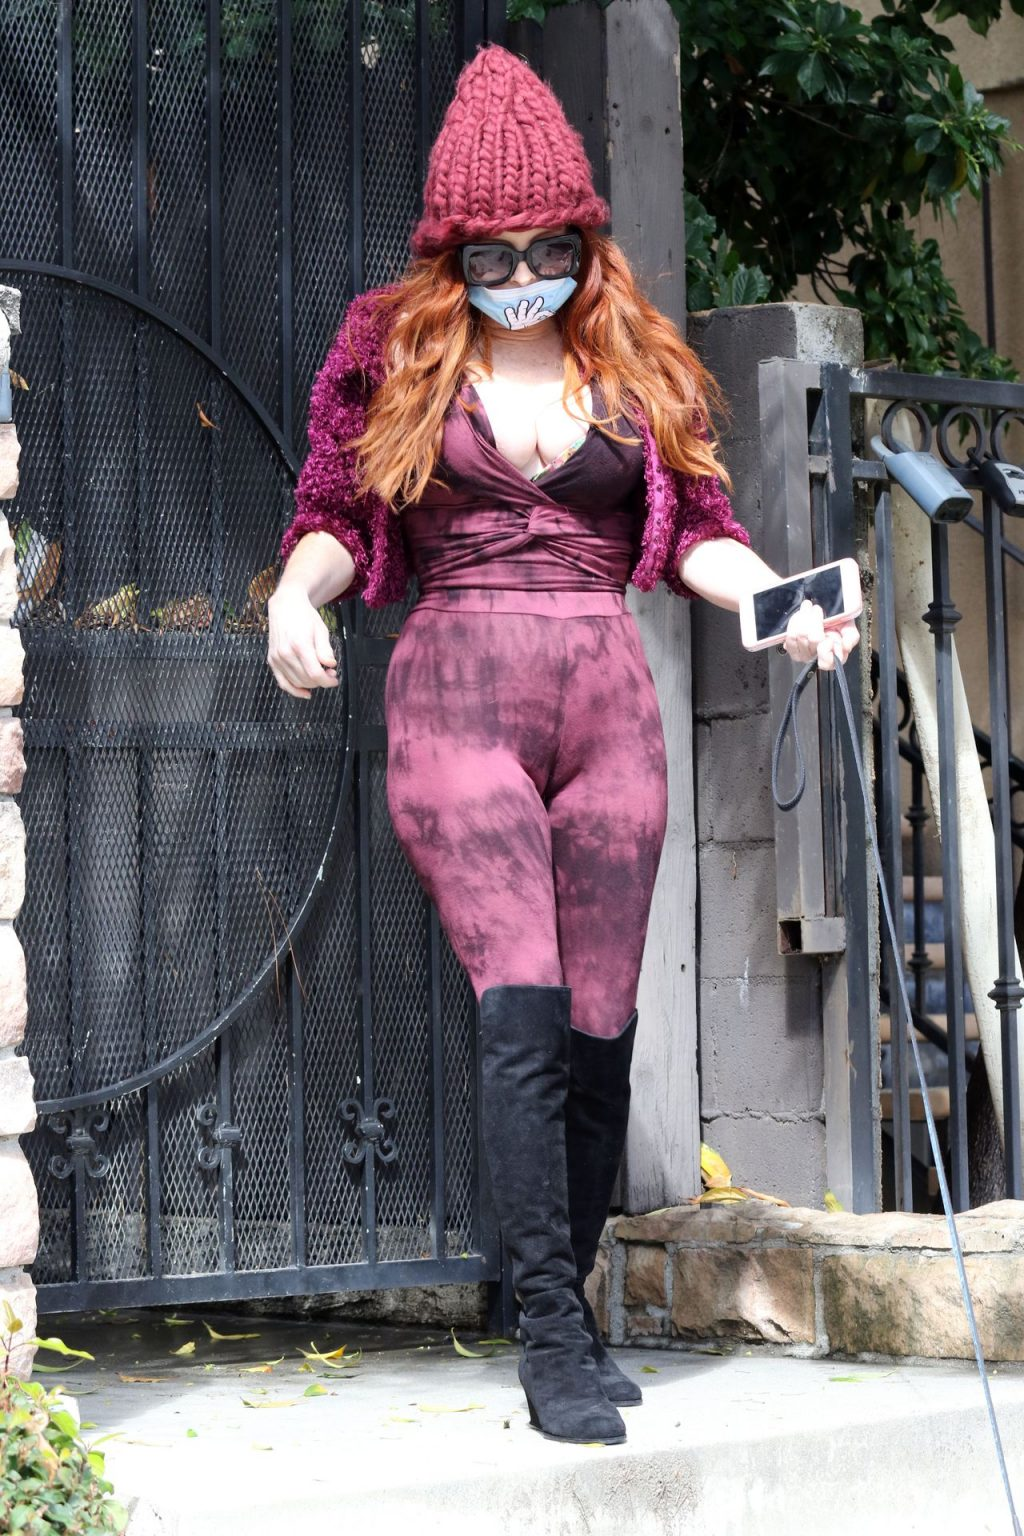 Phoebe Price Walks Her Dog While Nipple Out (19 Photos)